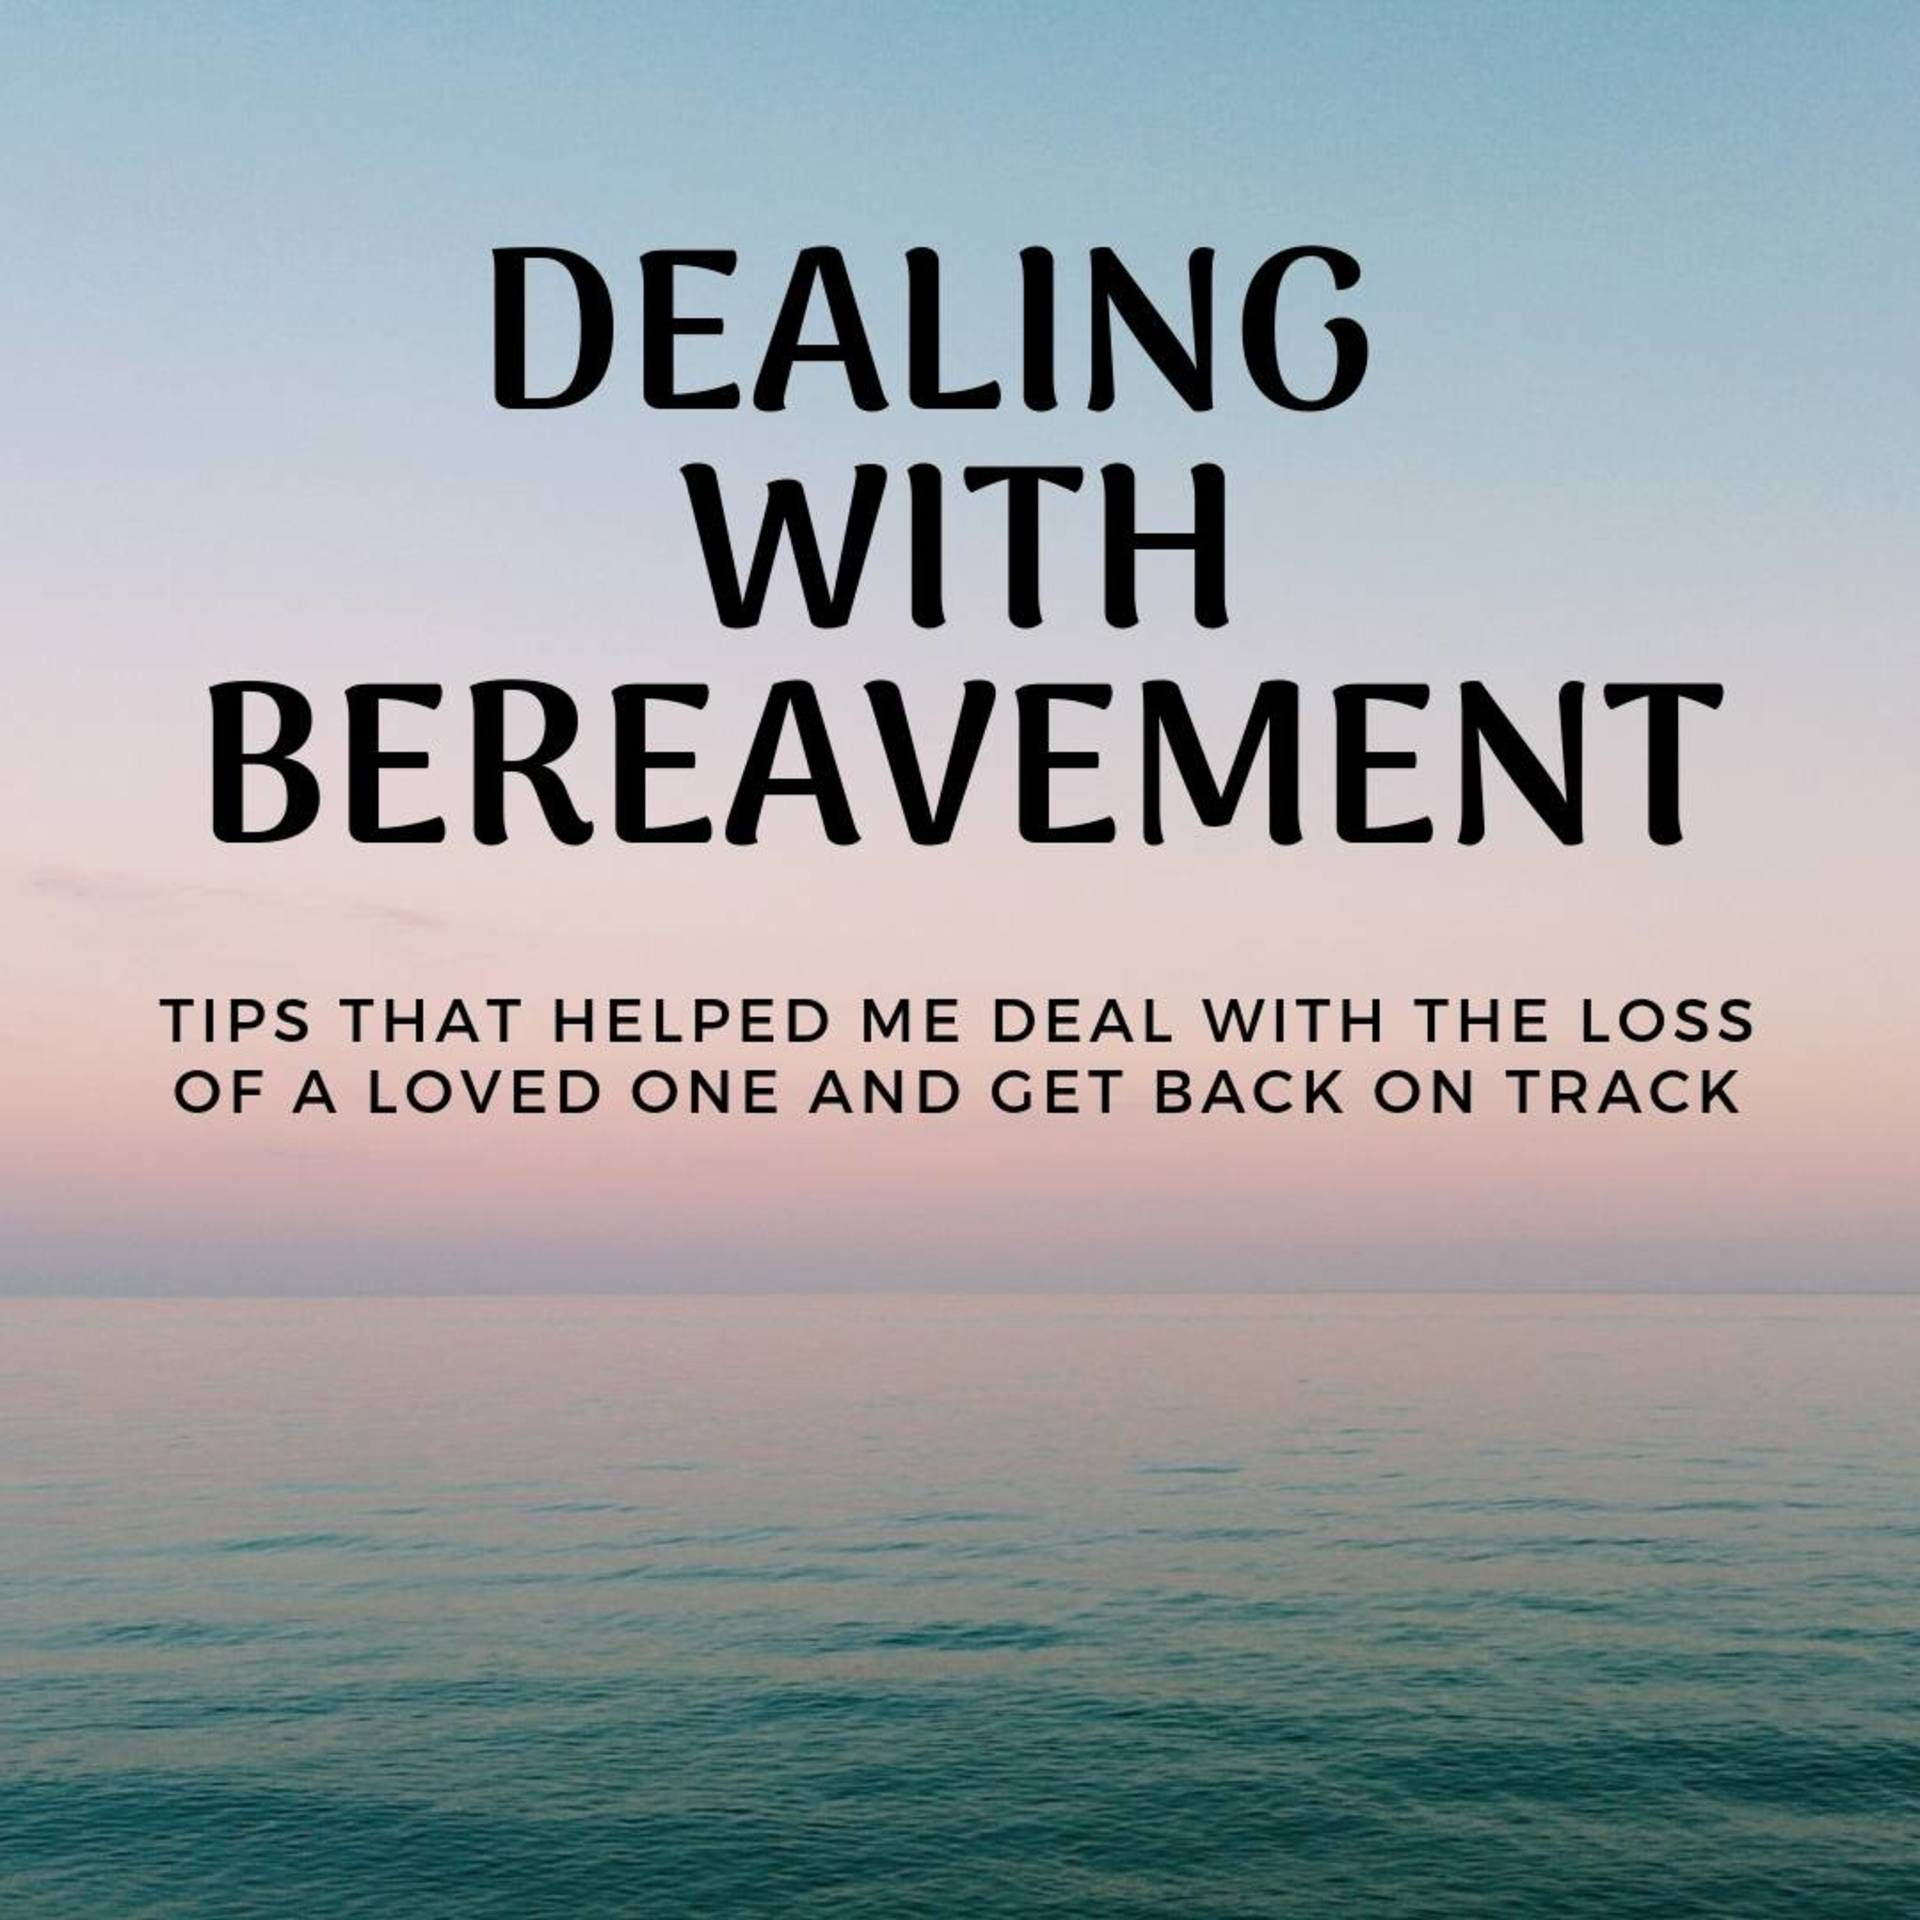 Dealing with bereavement - What helped me image